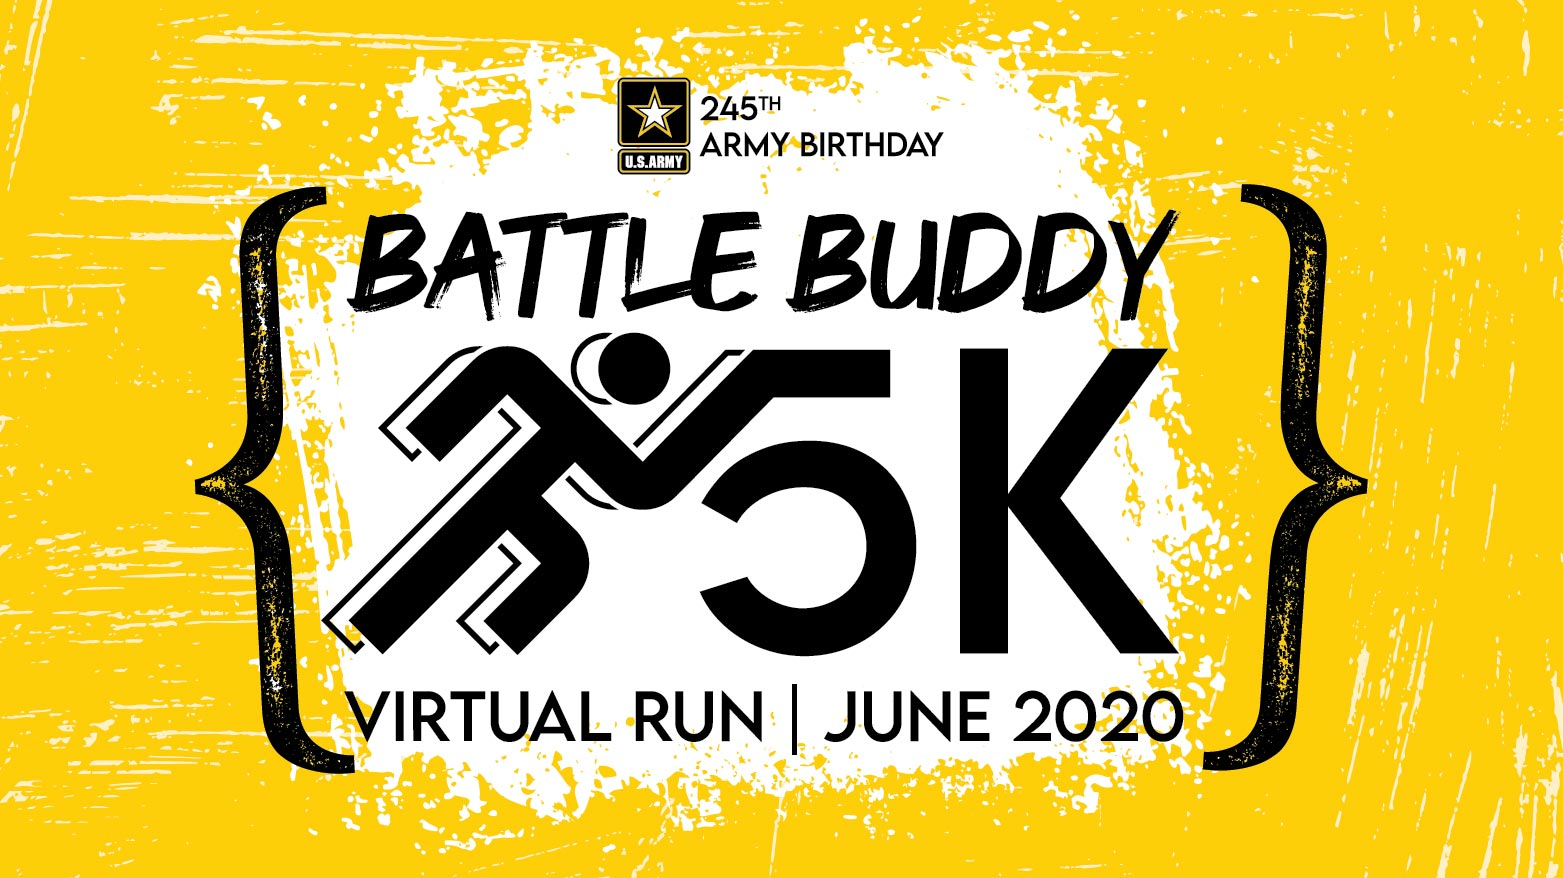 Battle Buddy Virtual 5k